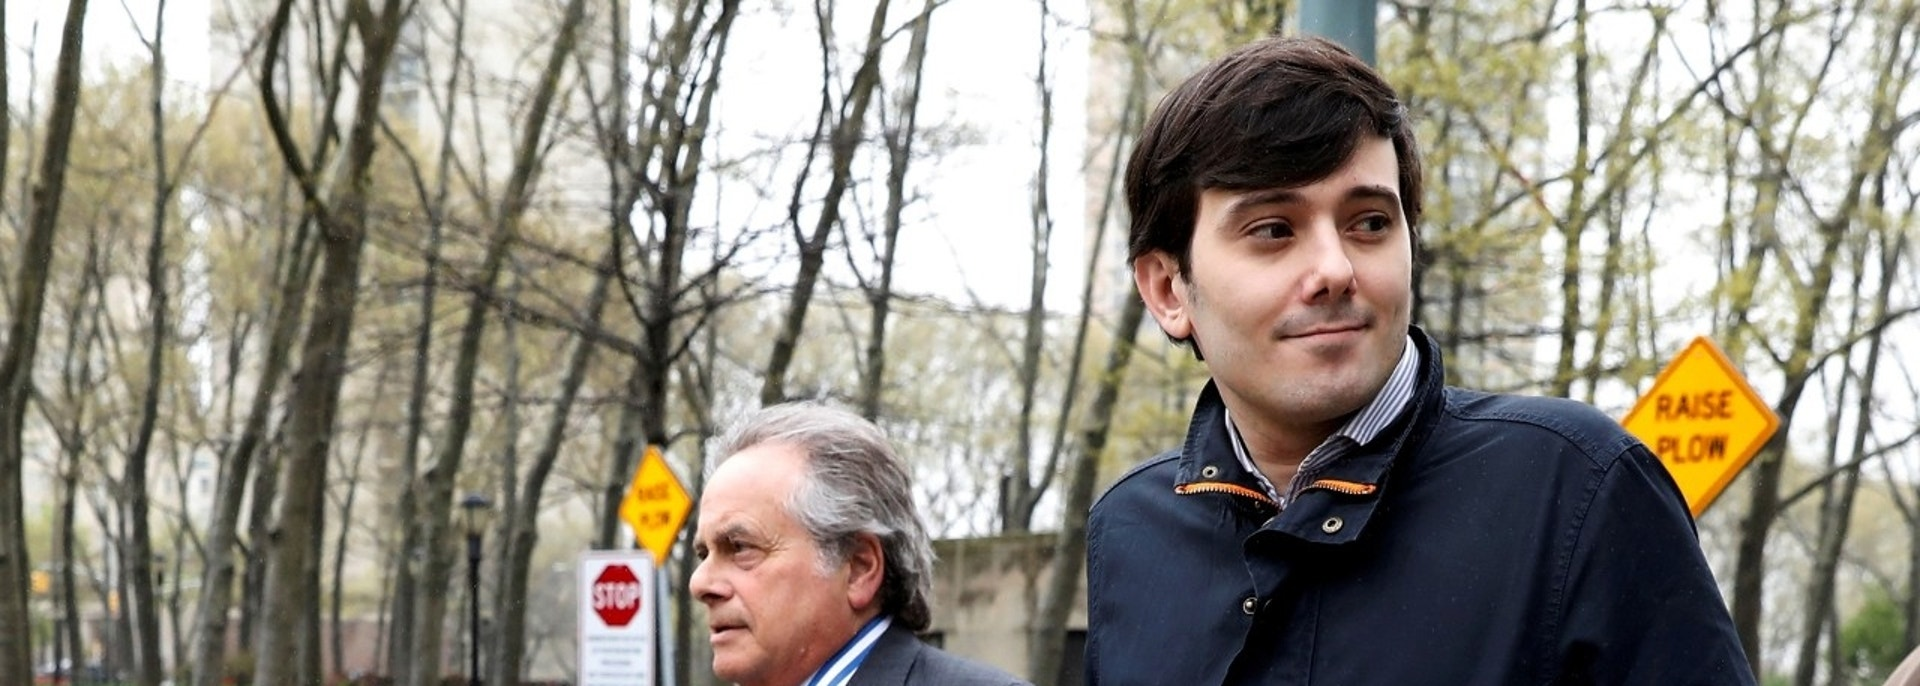 Martin Shkreli, former chief executive officer of Turing Pharmaceuticals and KaloBios Pharmaceuticals Inc, departs with his attorney Benjamin Brafman (L) after a hearing at U.S. Federal Court in Brooklyn, New York, U.S., April 26, 2017. REUTERS/Brendan McDermid - RC1E18CC3640